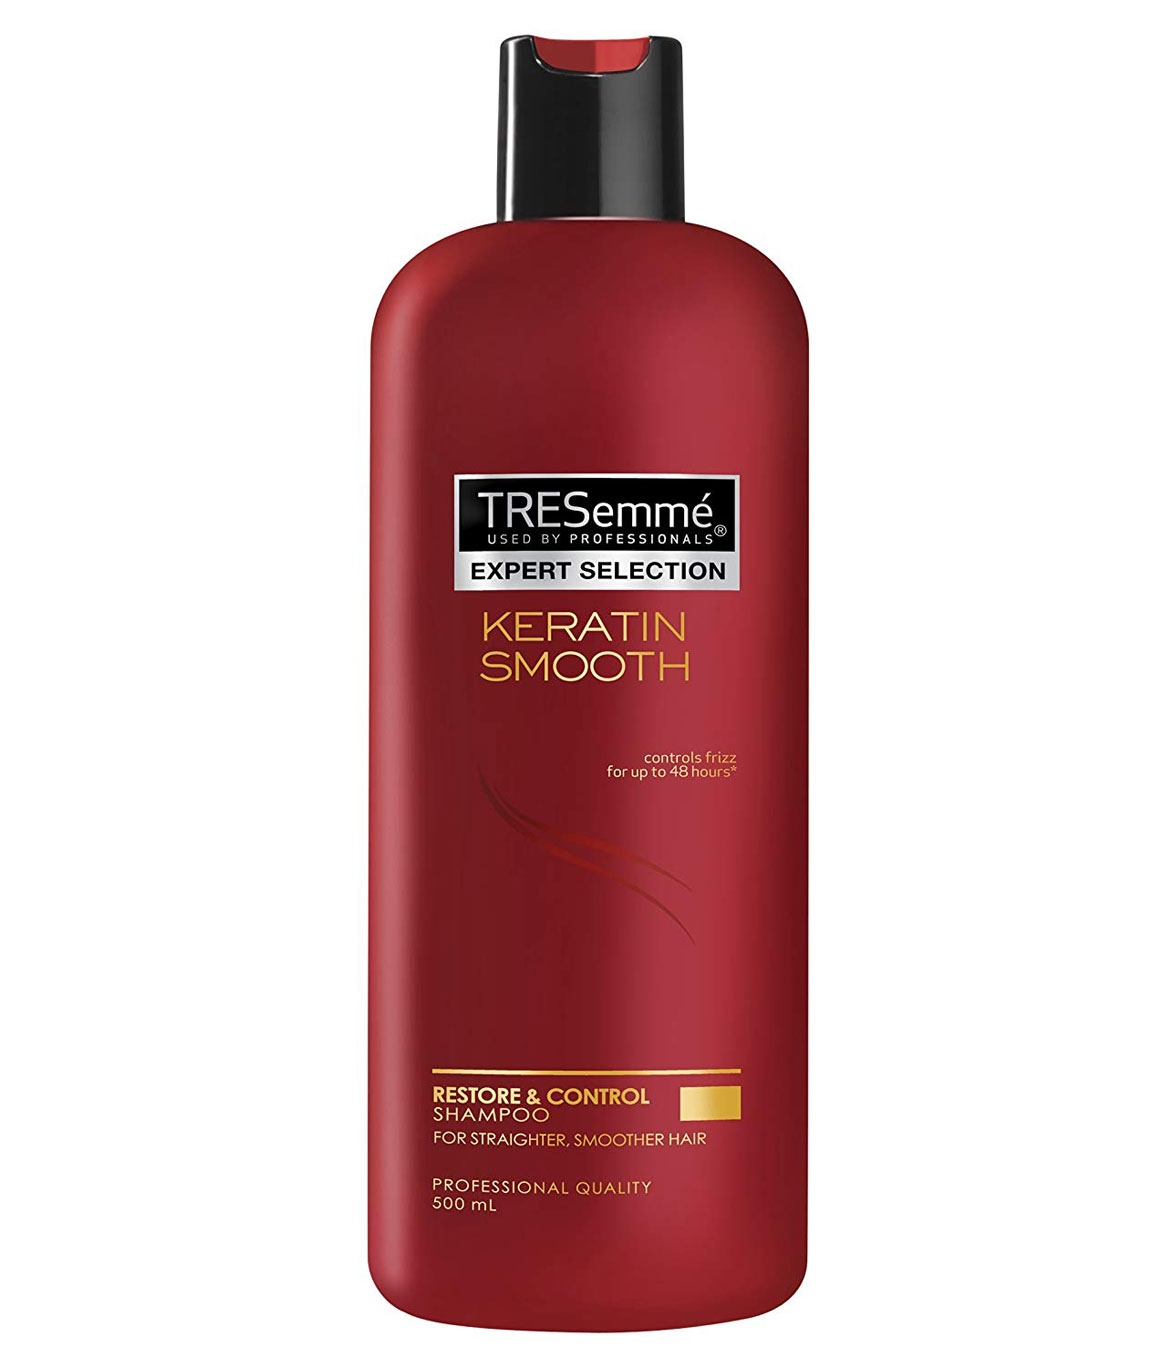 Tresemme Keratin Smooth Shampoo Controls frizz for up to 48 hours 500Ml